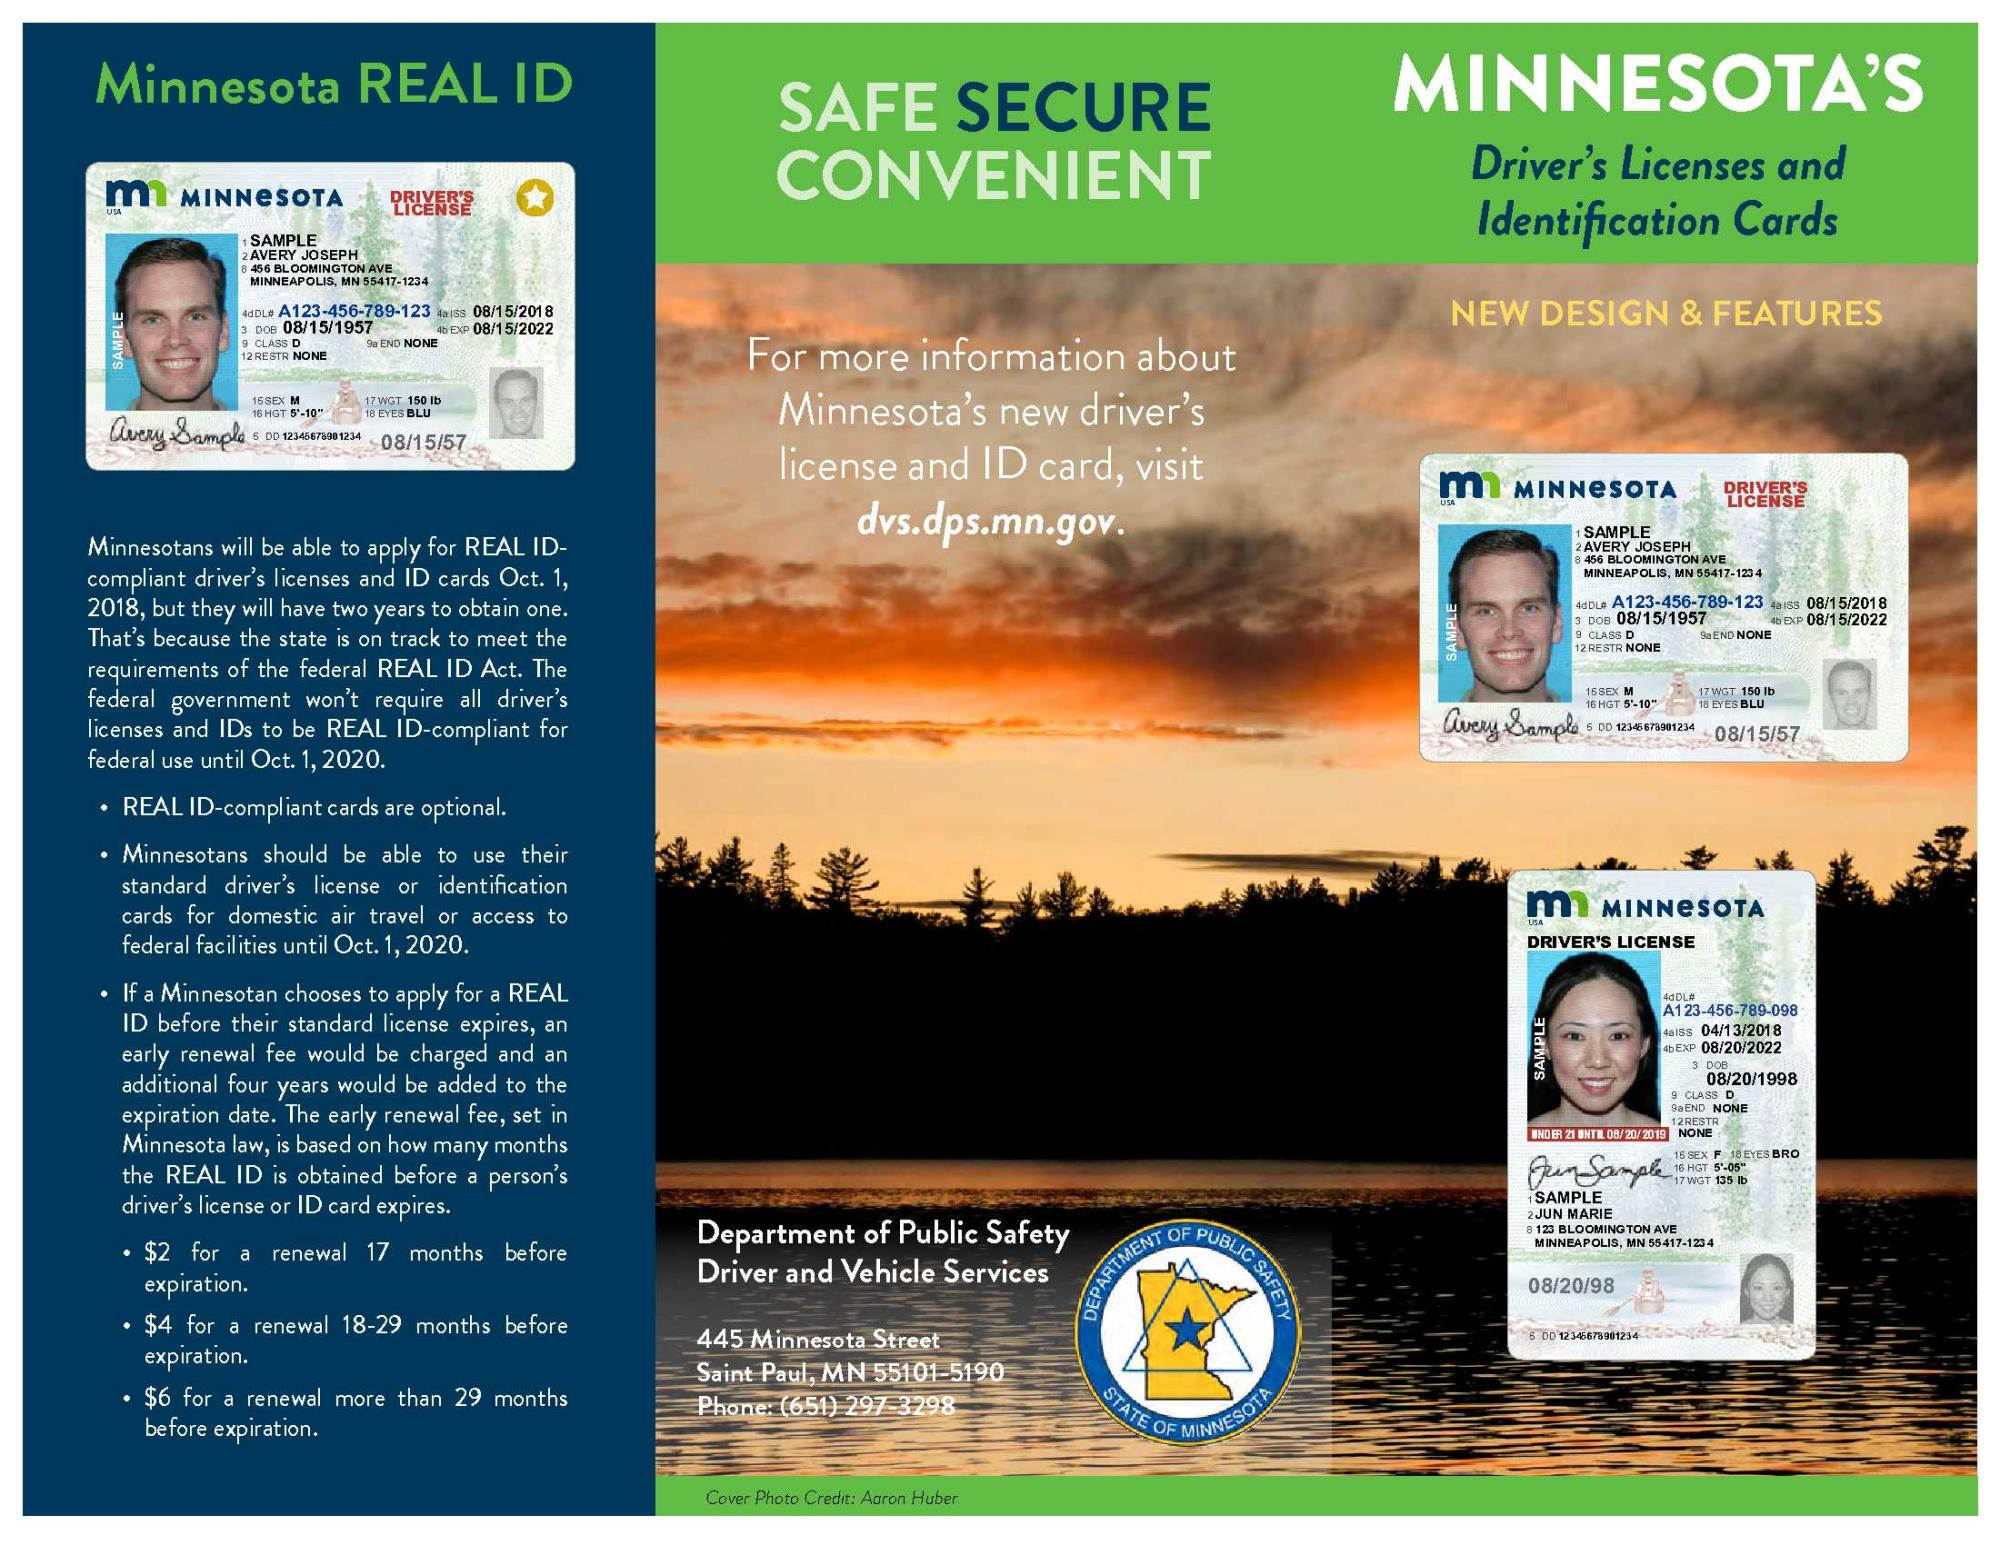 MN license brochure image